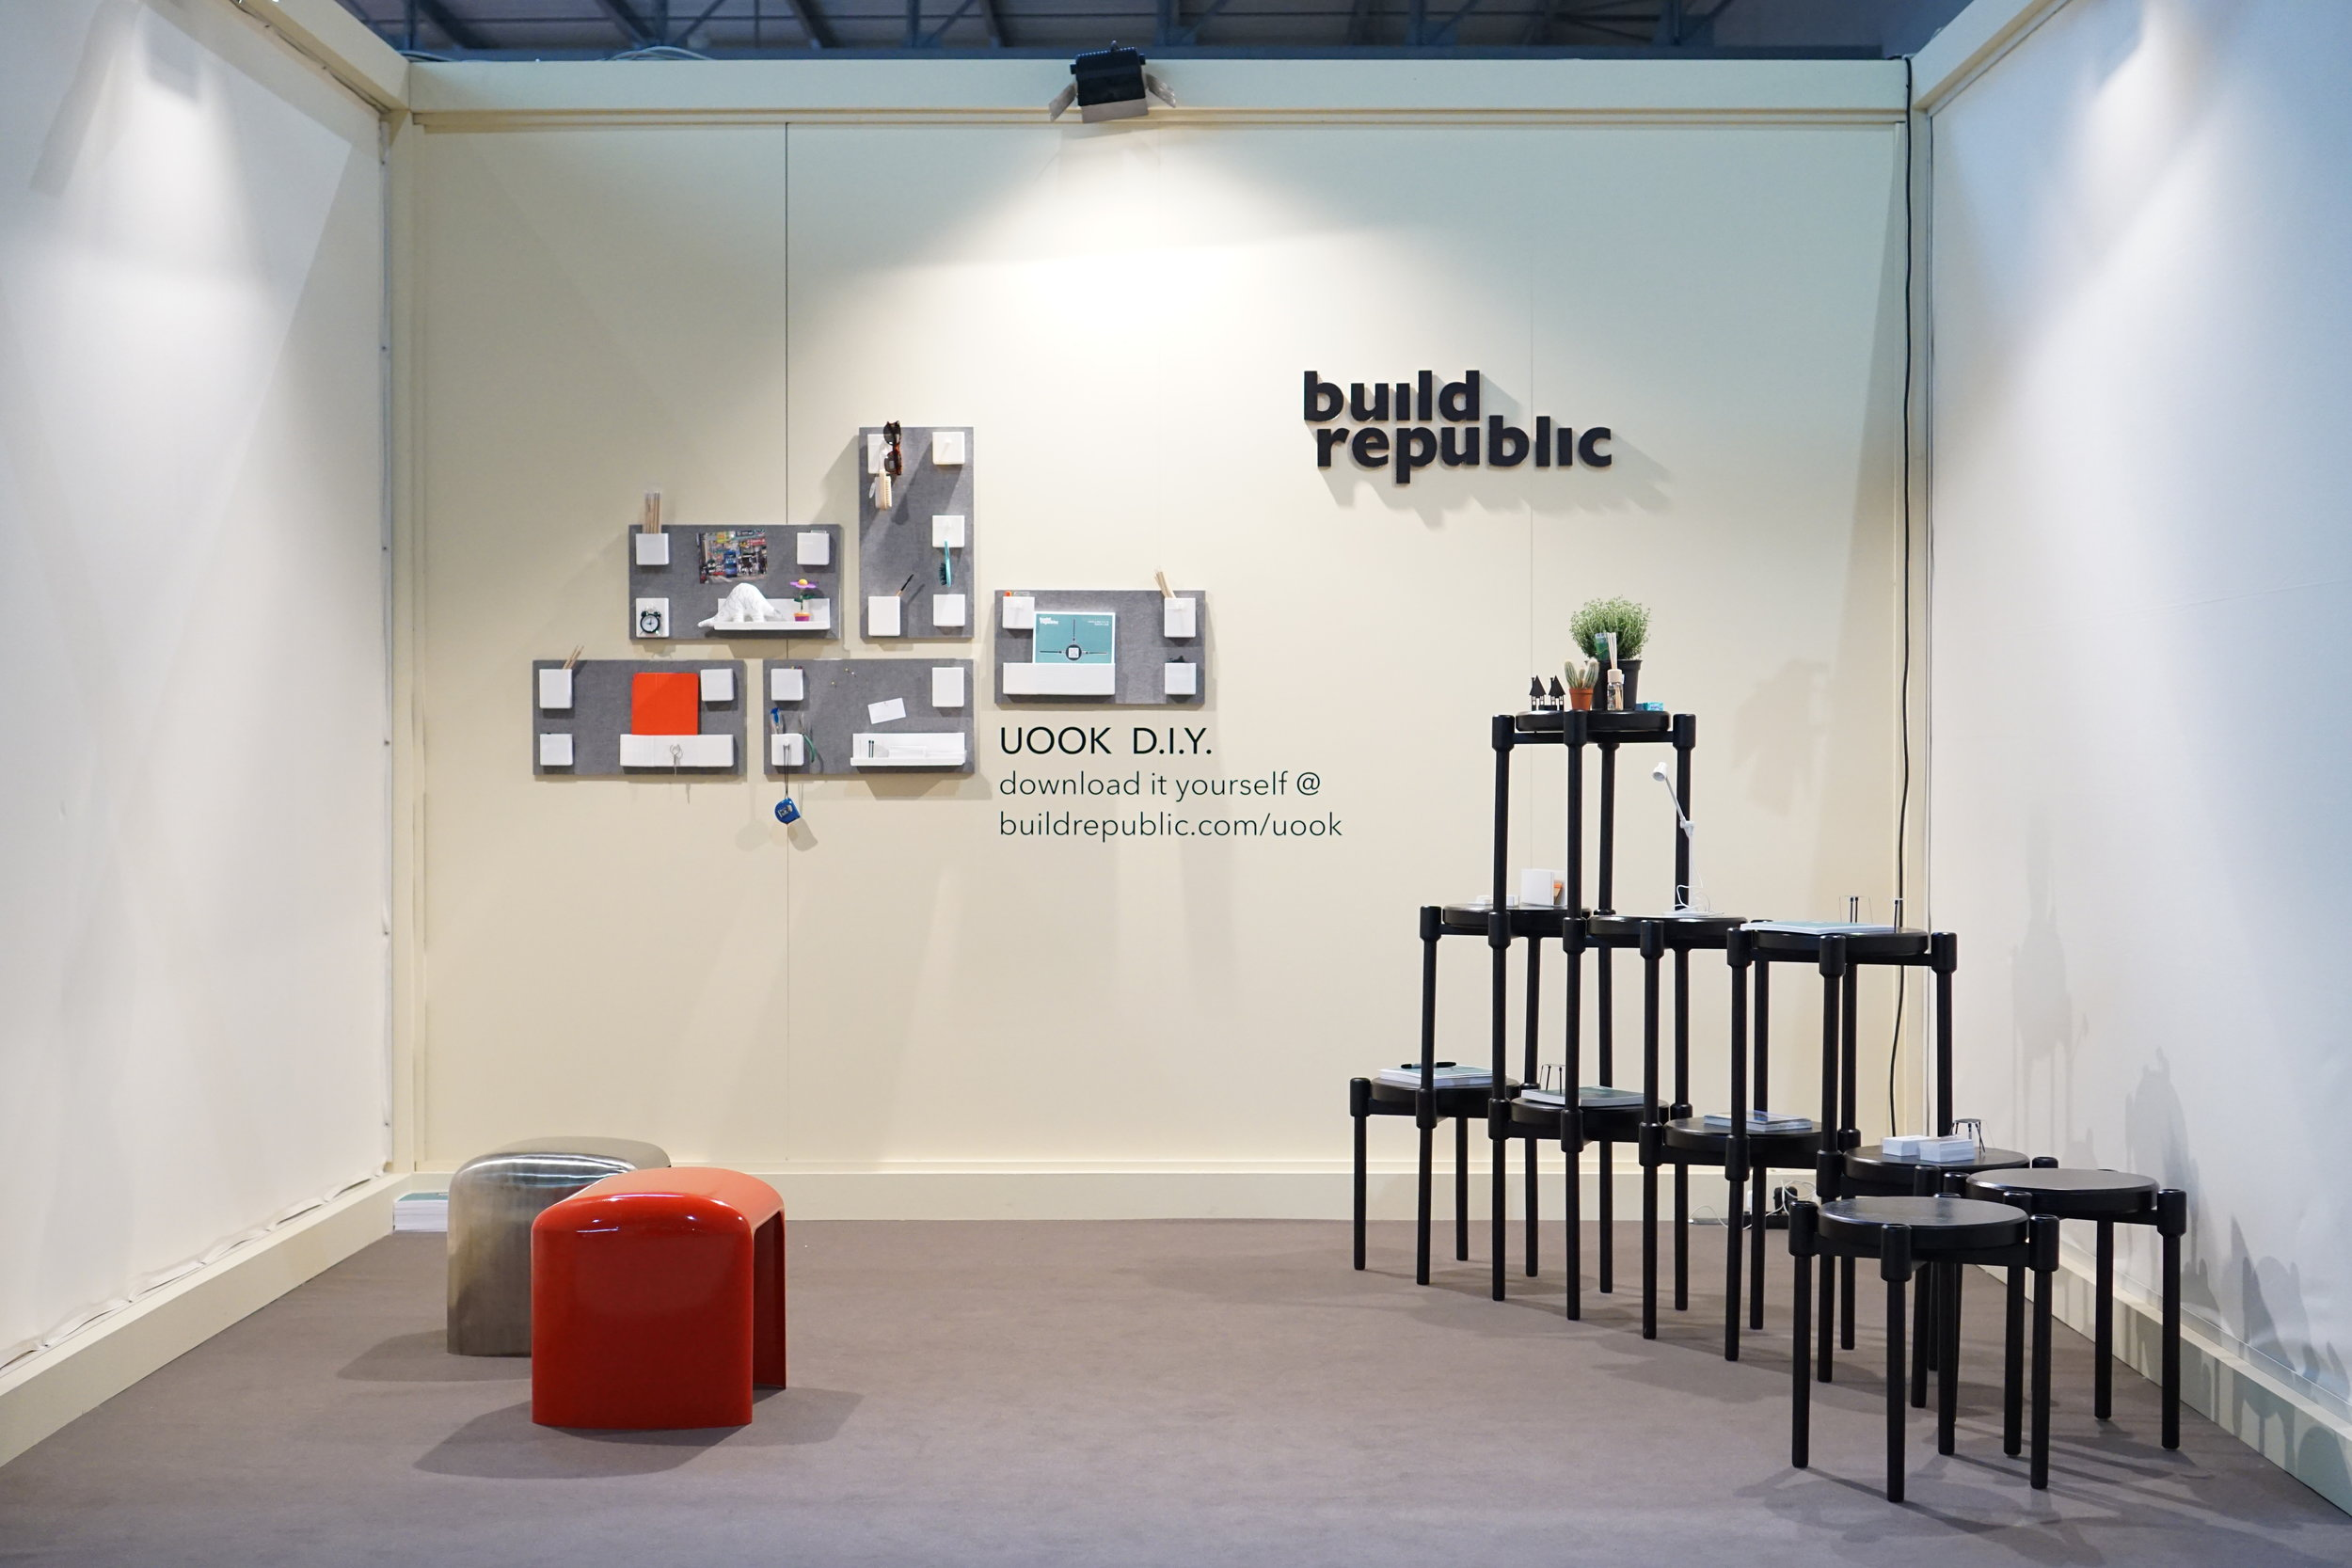 Build Republic booth at SaloneSatellite 2014 Milan Italy